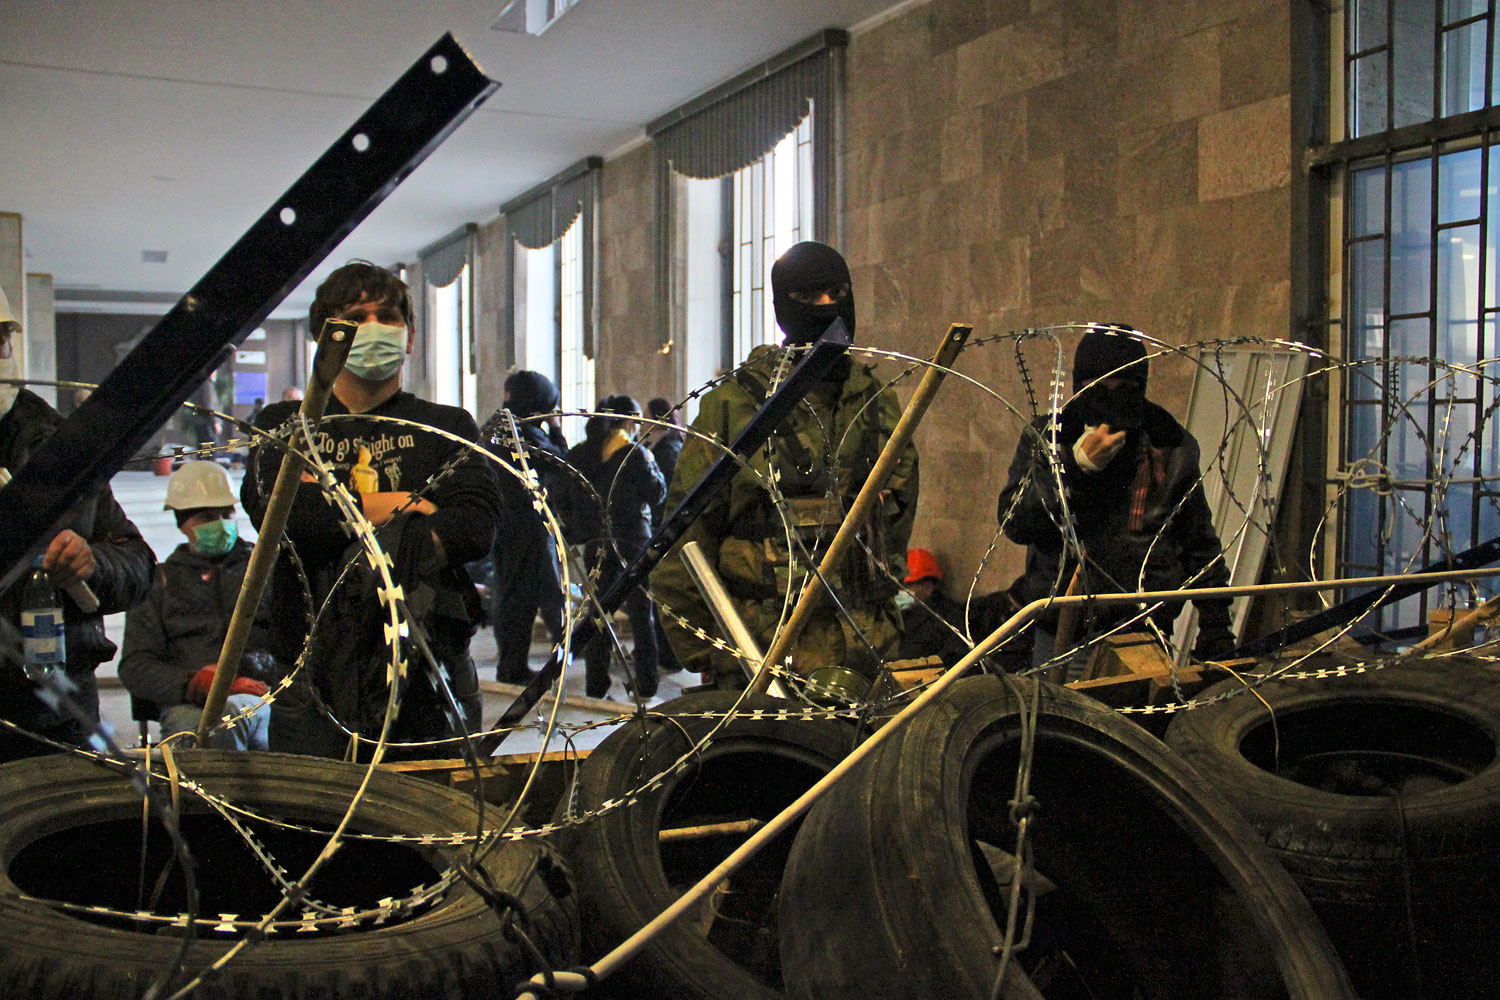 Activists prepare a barricade inside a government building in Donetsk, Ukraine, on April 7, 2014